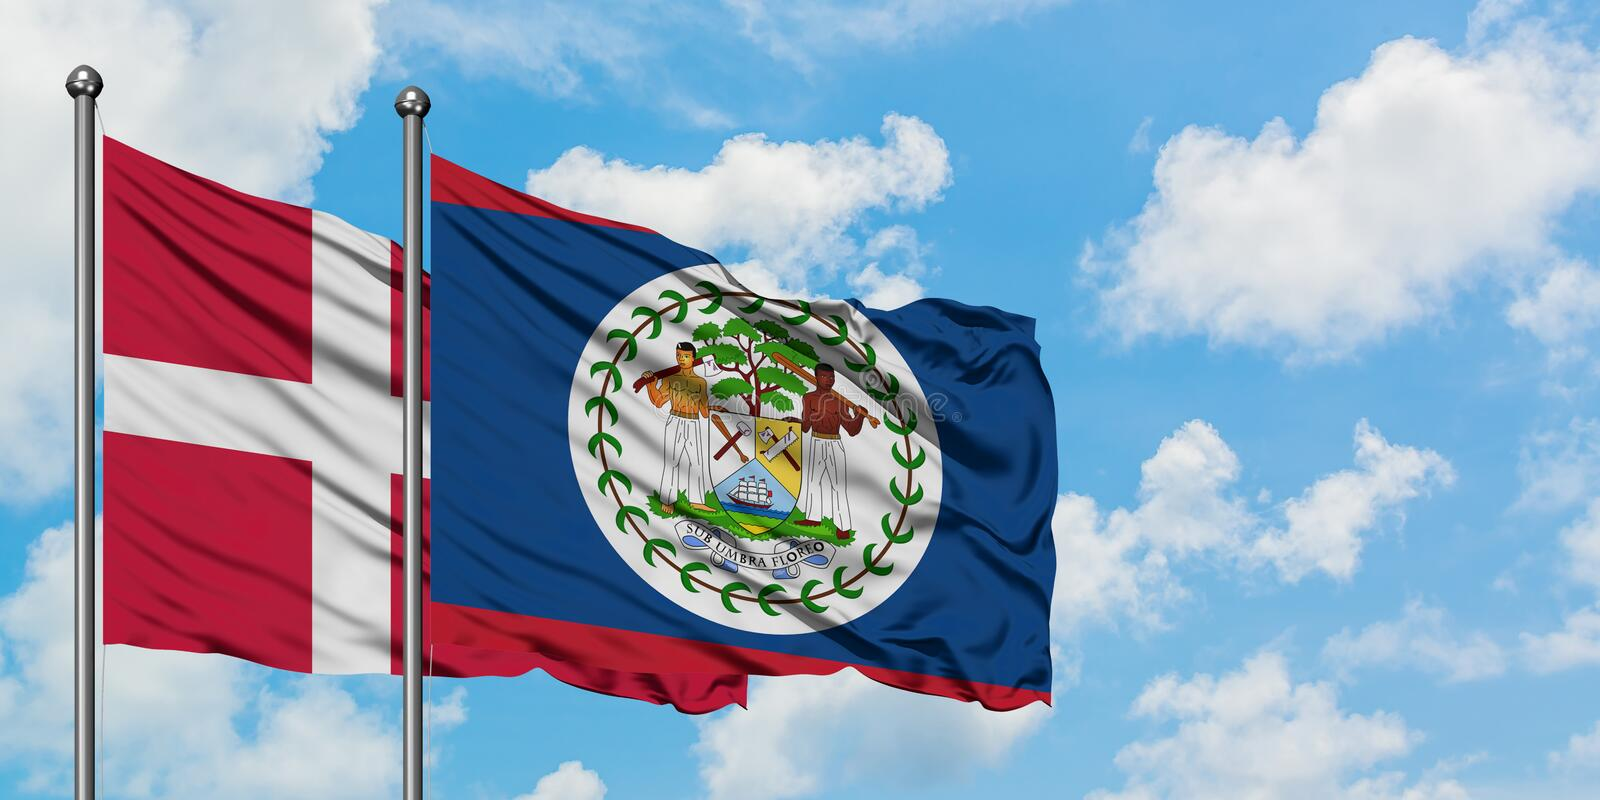 Denmark and Belize flag waving in the wind against white cloudy blue sky together. Diplomacy concept, international relations. Consul, diplomat, ambassador royalty free stock image